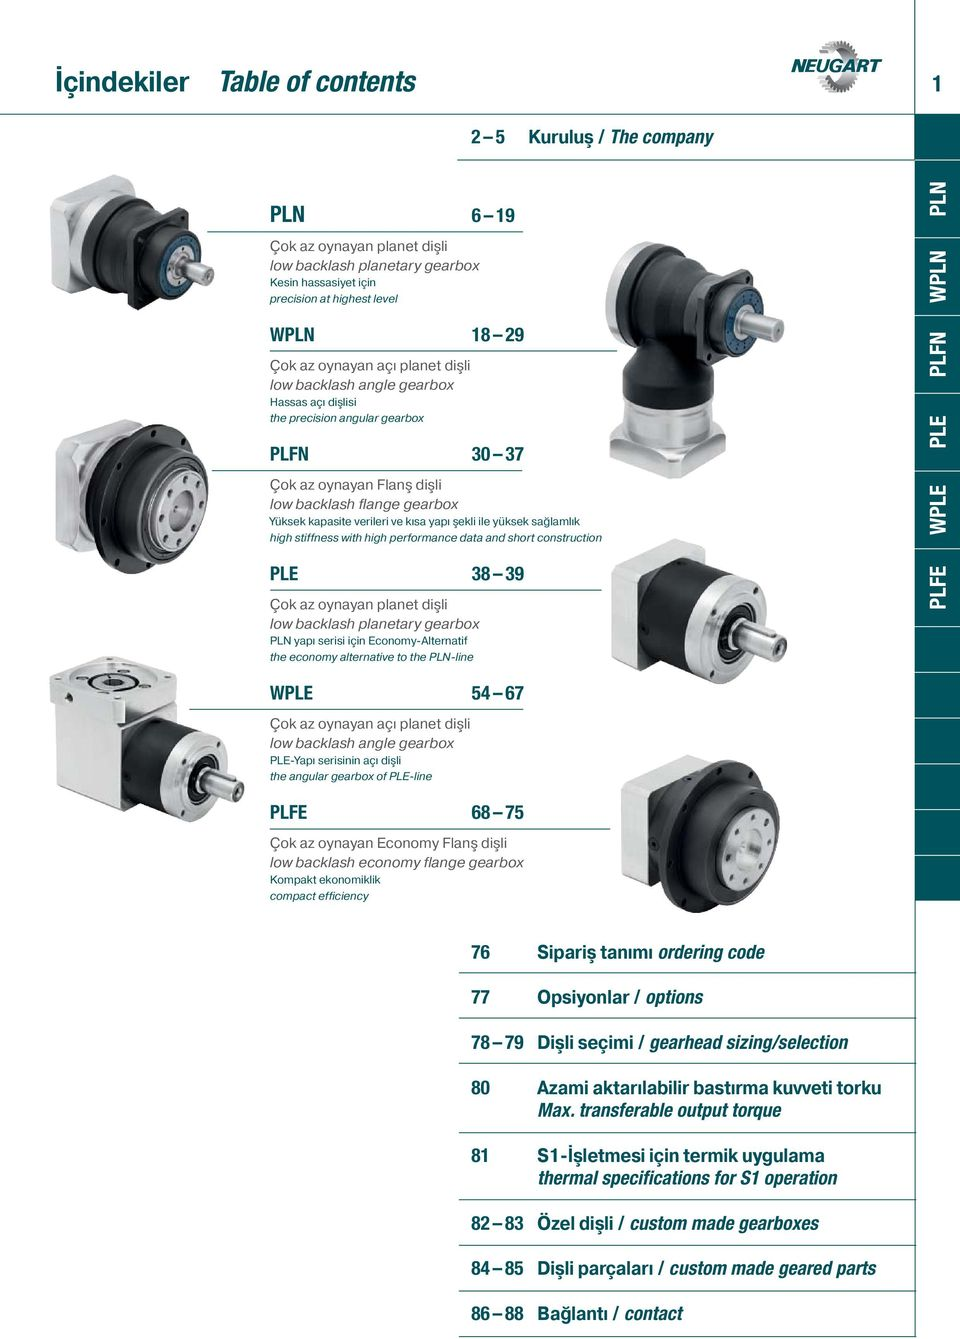 yapı şekli ile yüksek sağlamlık high stiffness with high performance data and short construction PLE 38 39 Çok az oynayan planet dişli low backlash planetary gearbox PLN yapı serisi için